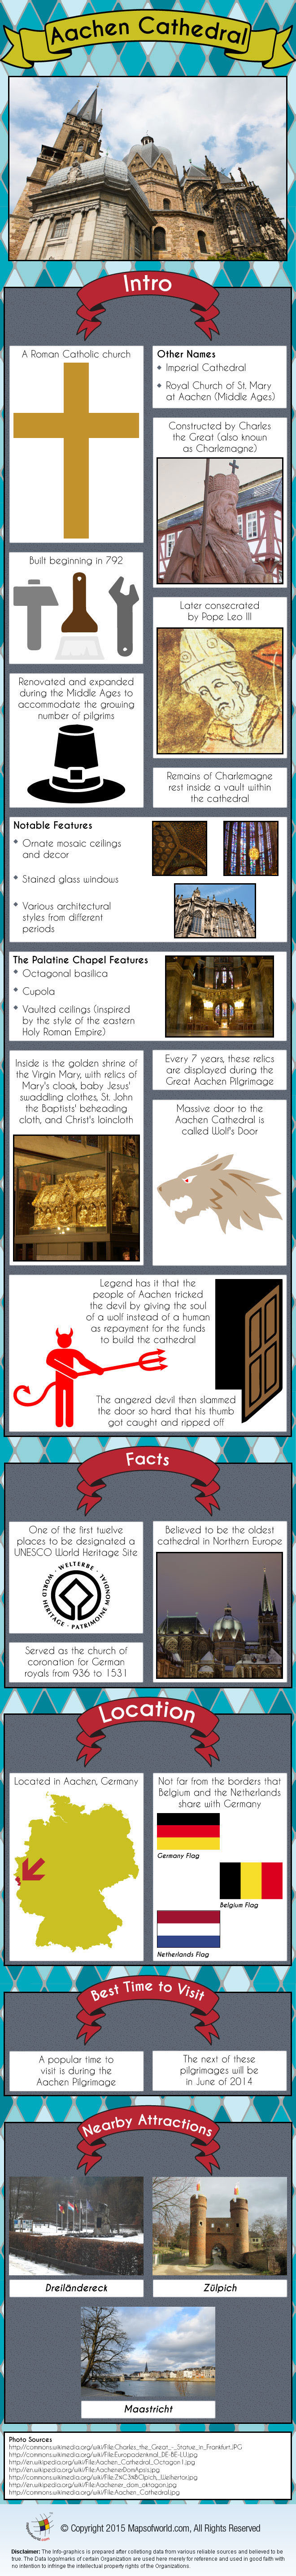 Aachen Cathedral Infographic